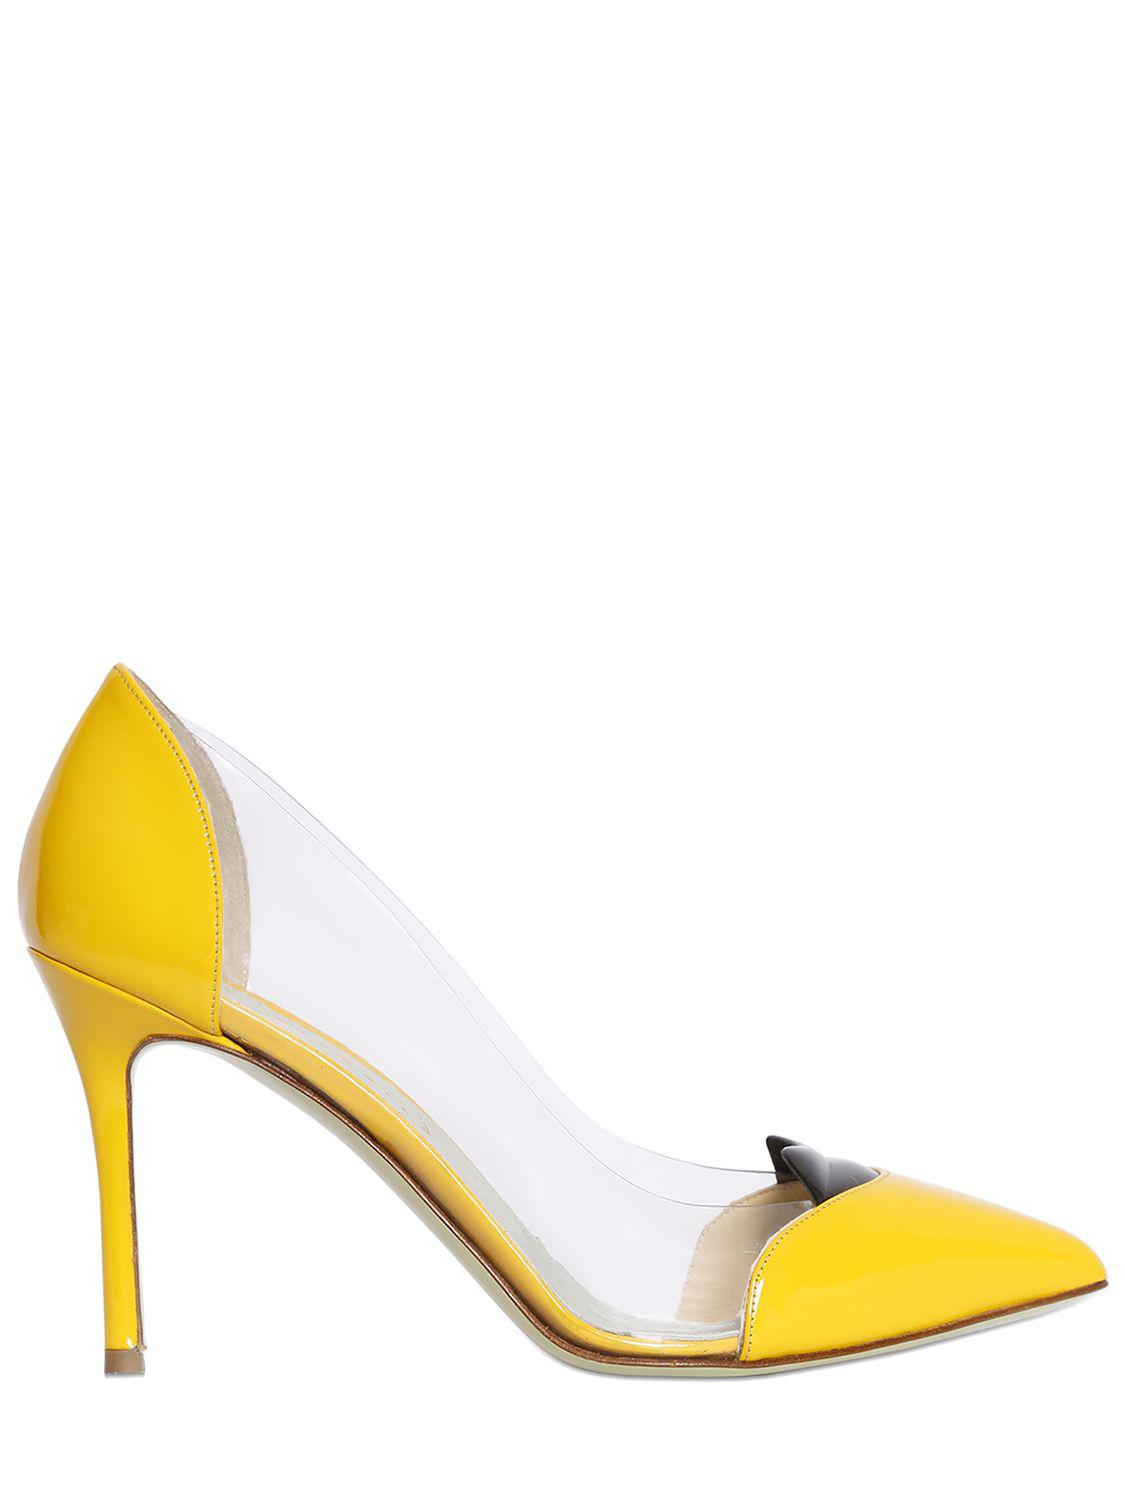 GIANNICO Patent Leather Heels DwLyKVT